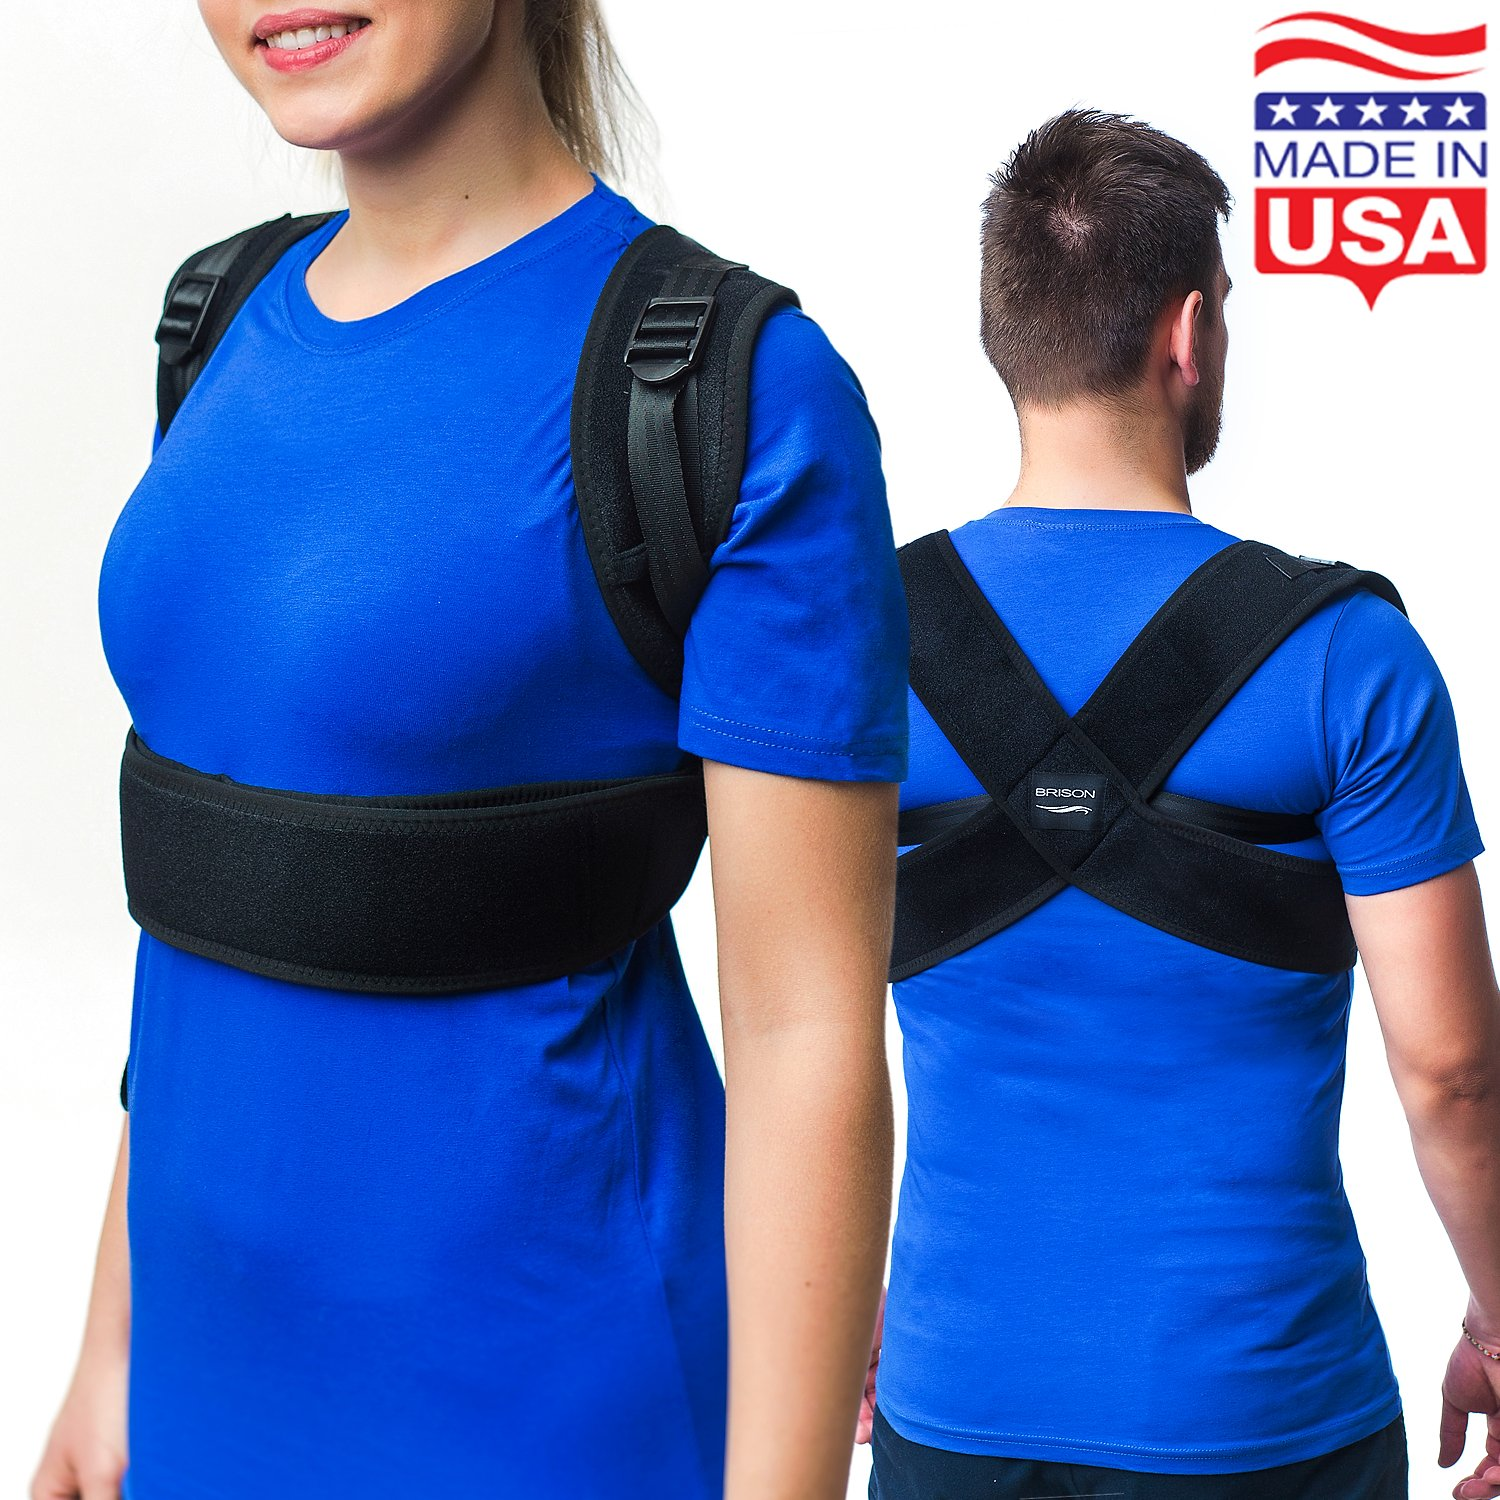 Cheap Perfect Posture Brace Find Deals On Support Get Quotations Corrector For Women And Men Made In Usa Adjustable Kyphosis